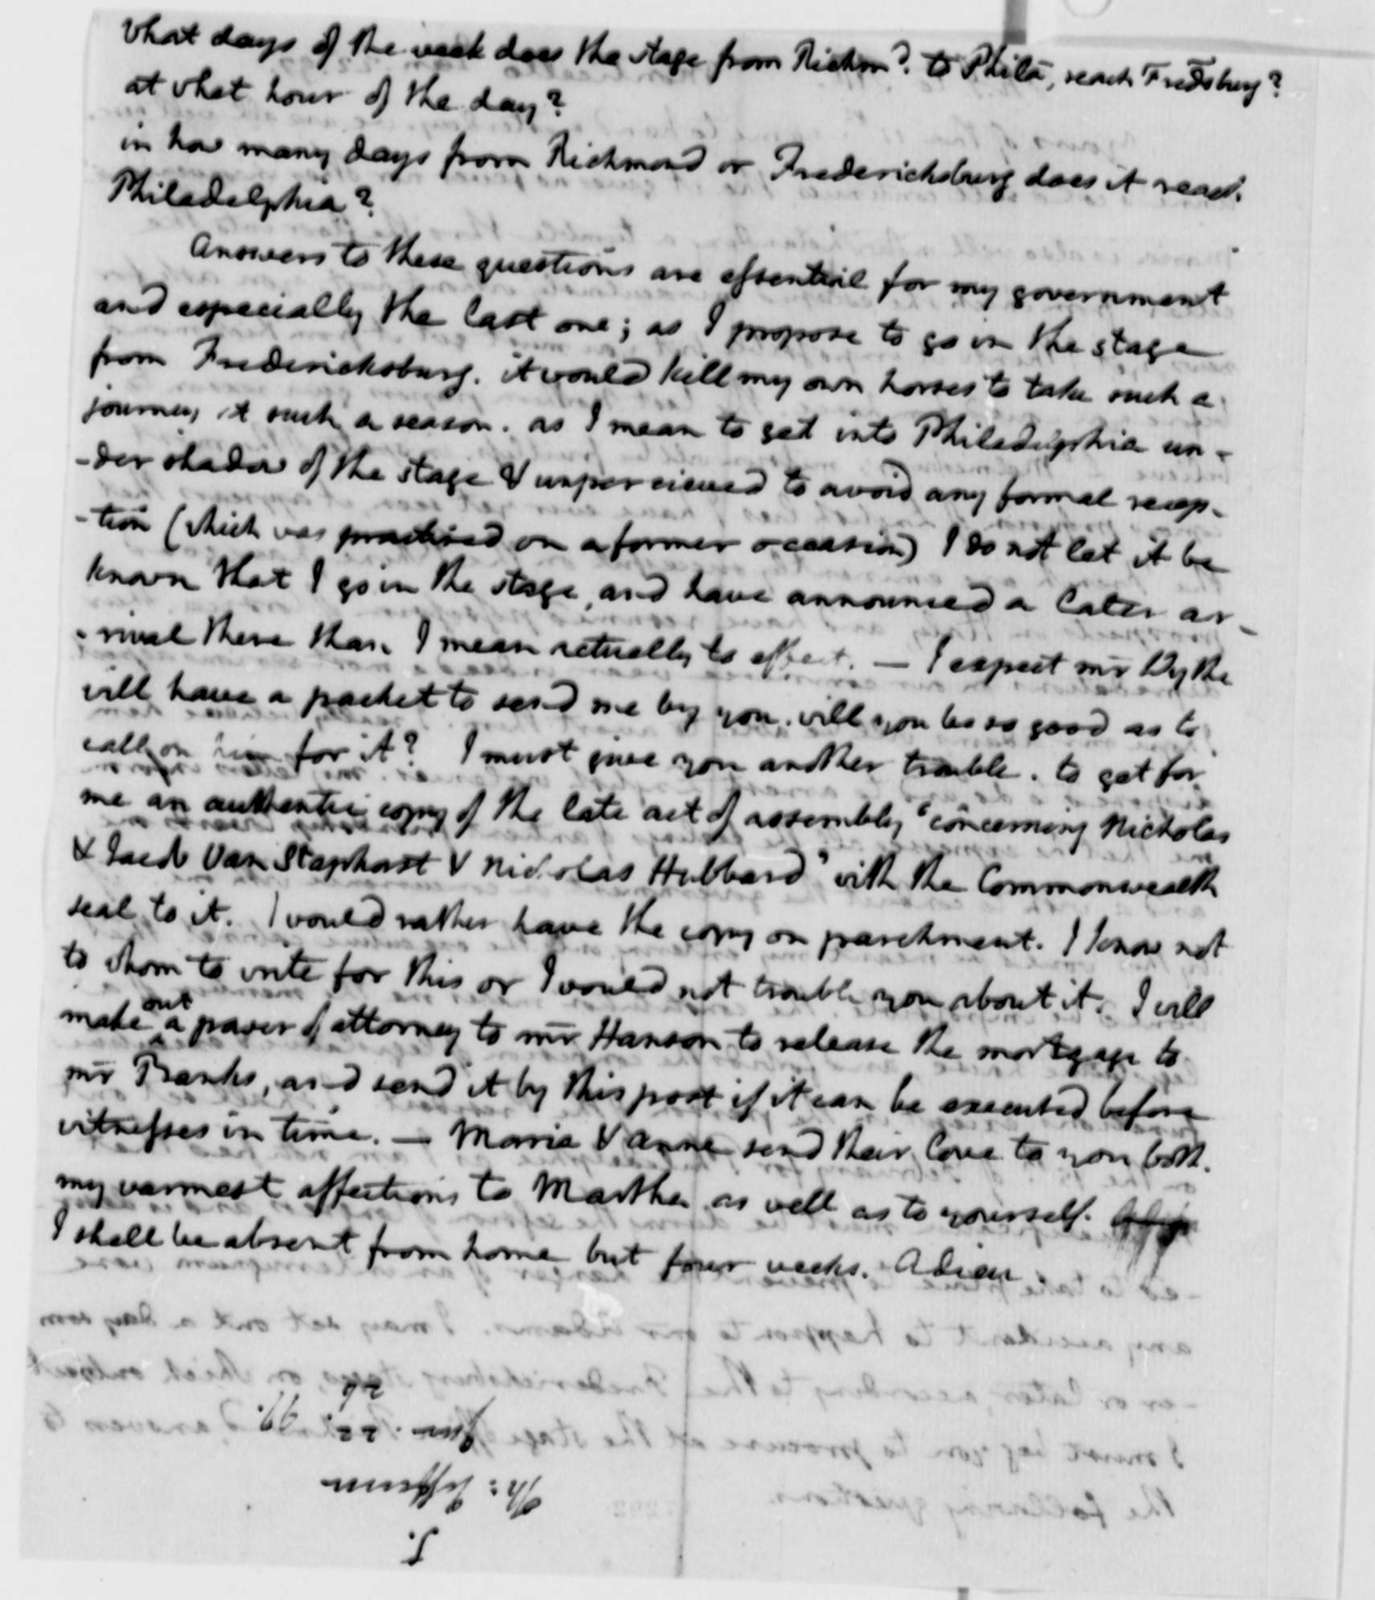 Thomas Jefferson to Thomas Mann Randolph, Jr., January 22, 1797